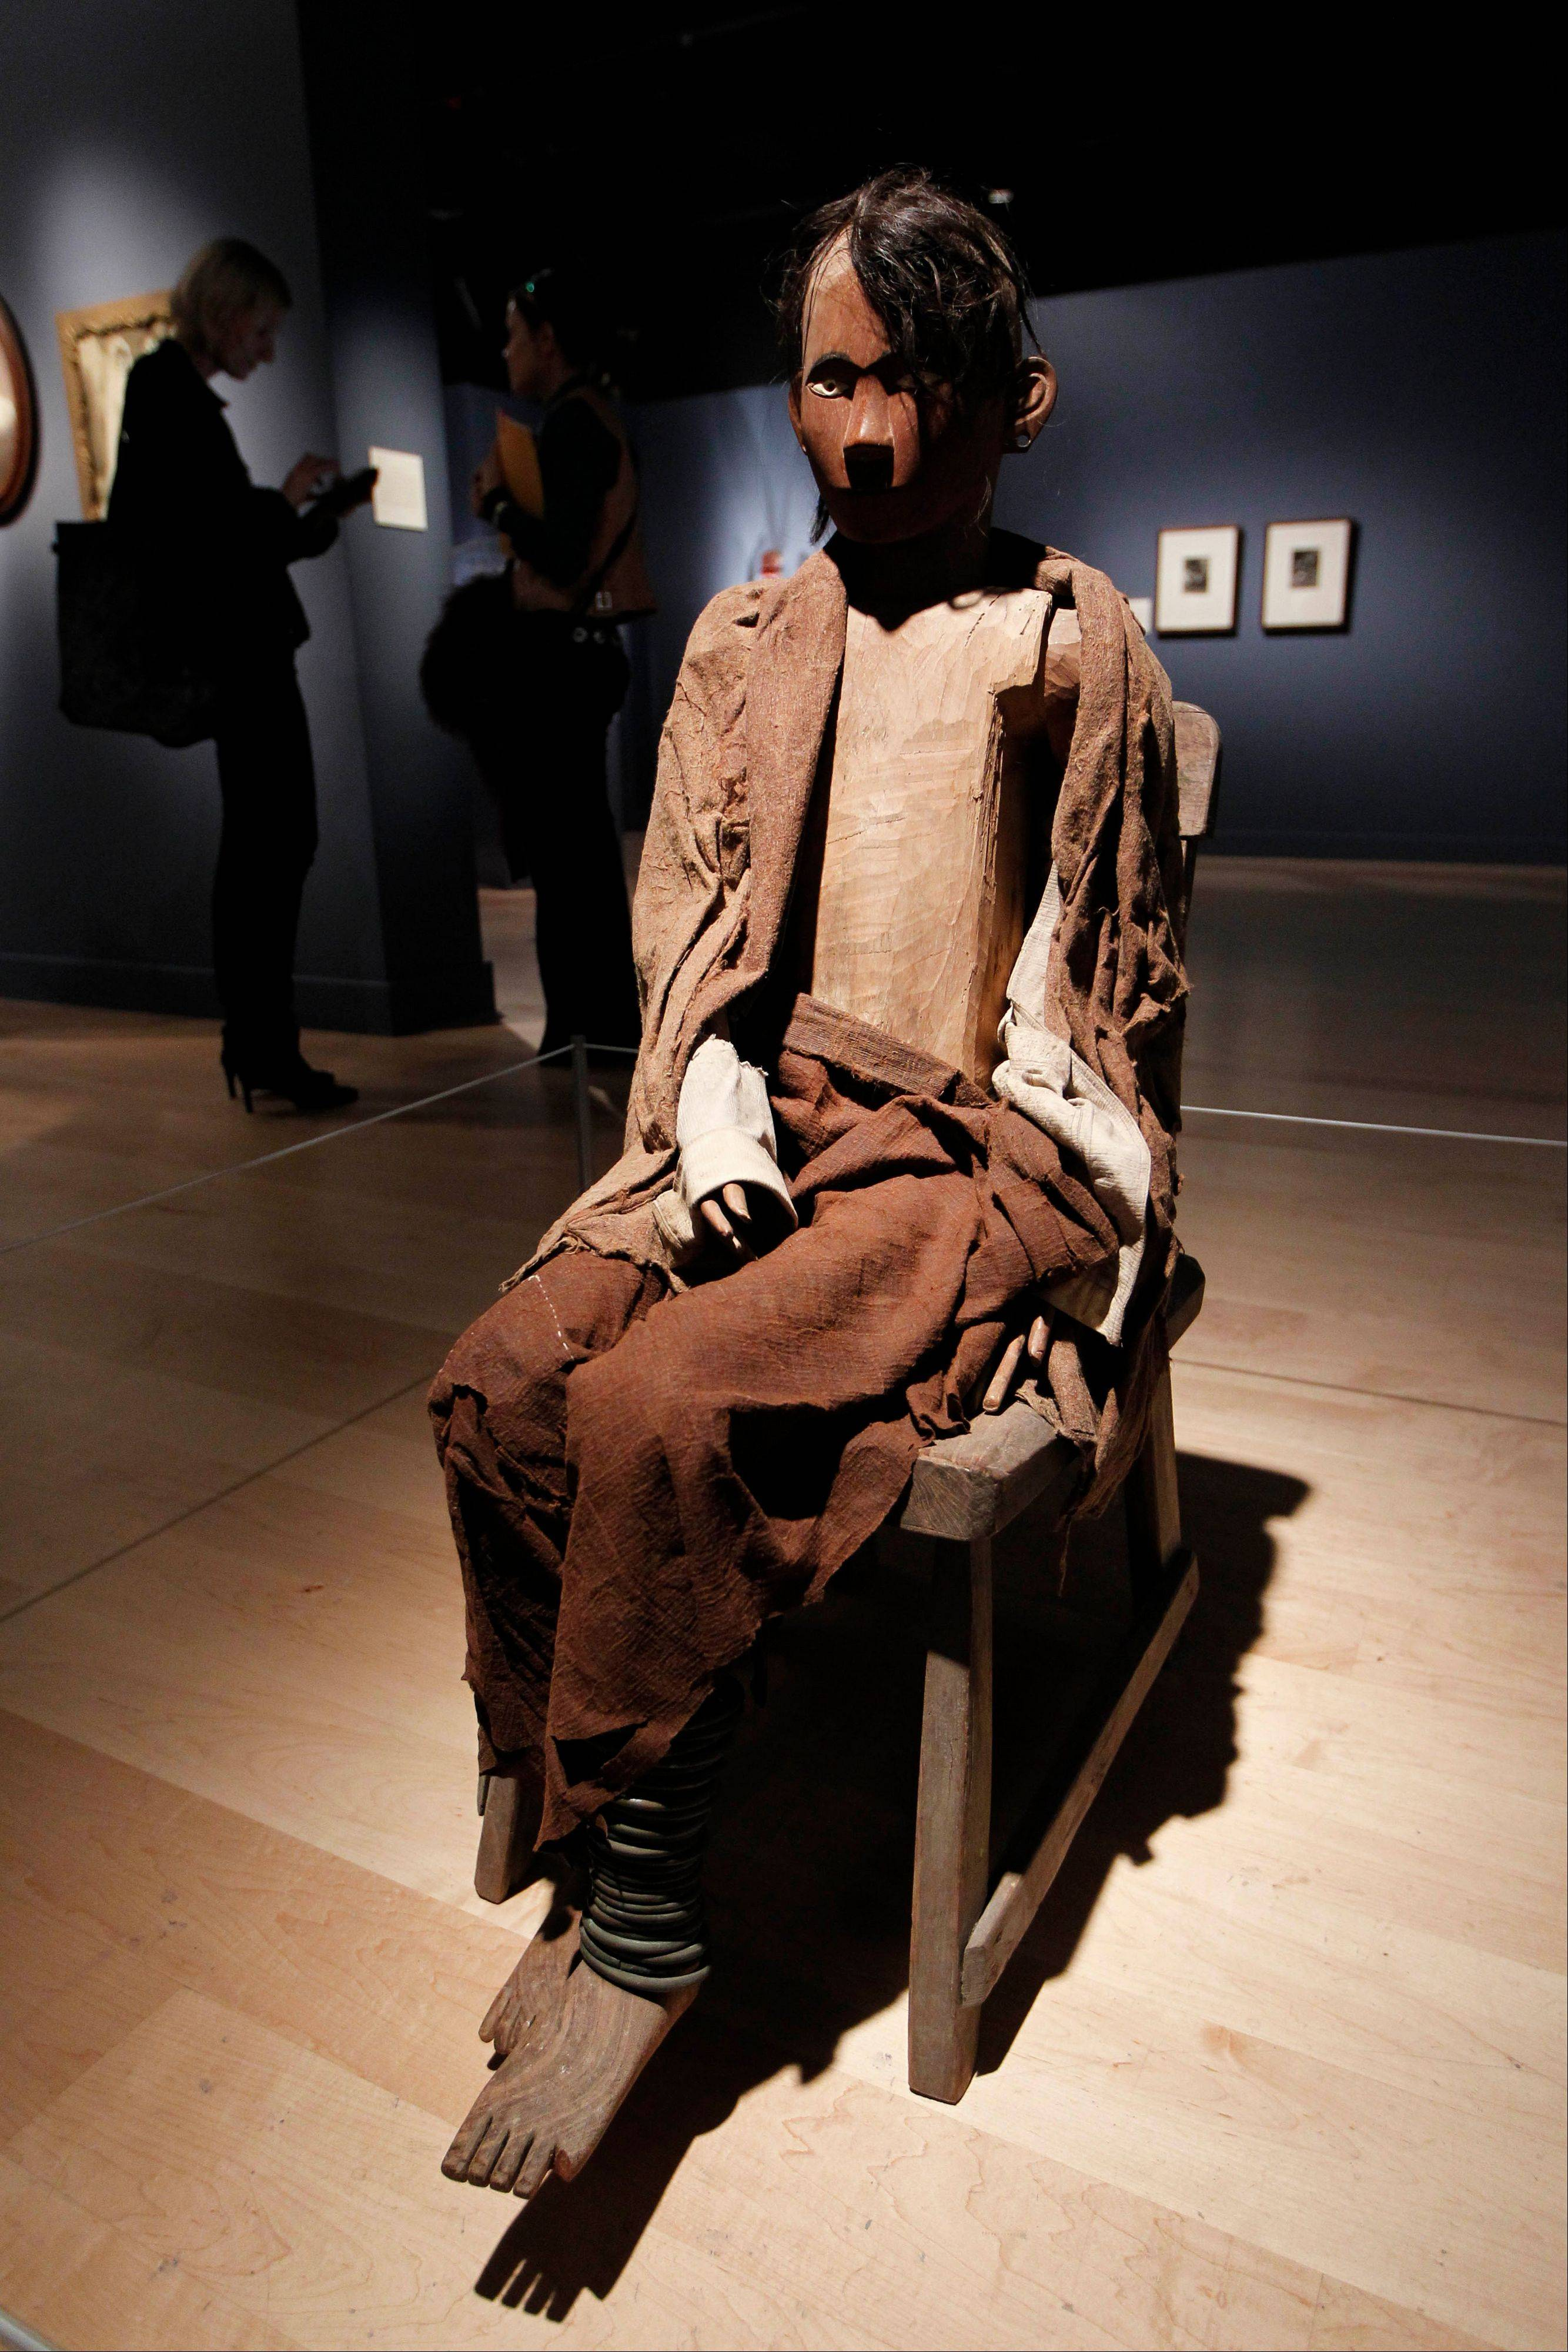 An Indonesian Tau-Tau memorial sculpture is seen on display at an exhibition 'Death: The Richard Harris Collection' at the Wellcome Collection gallery in London.